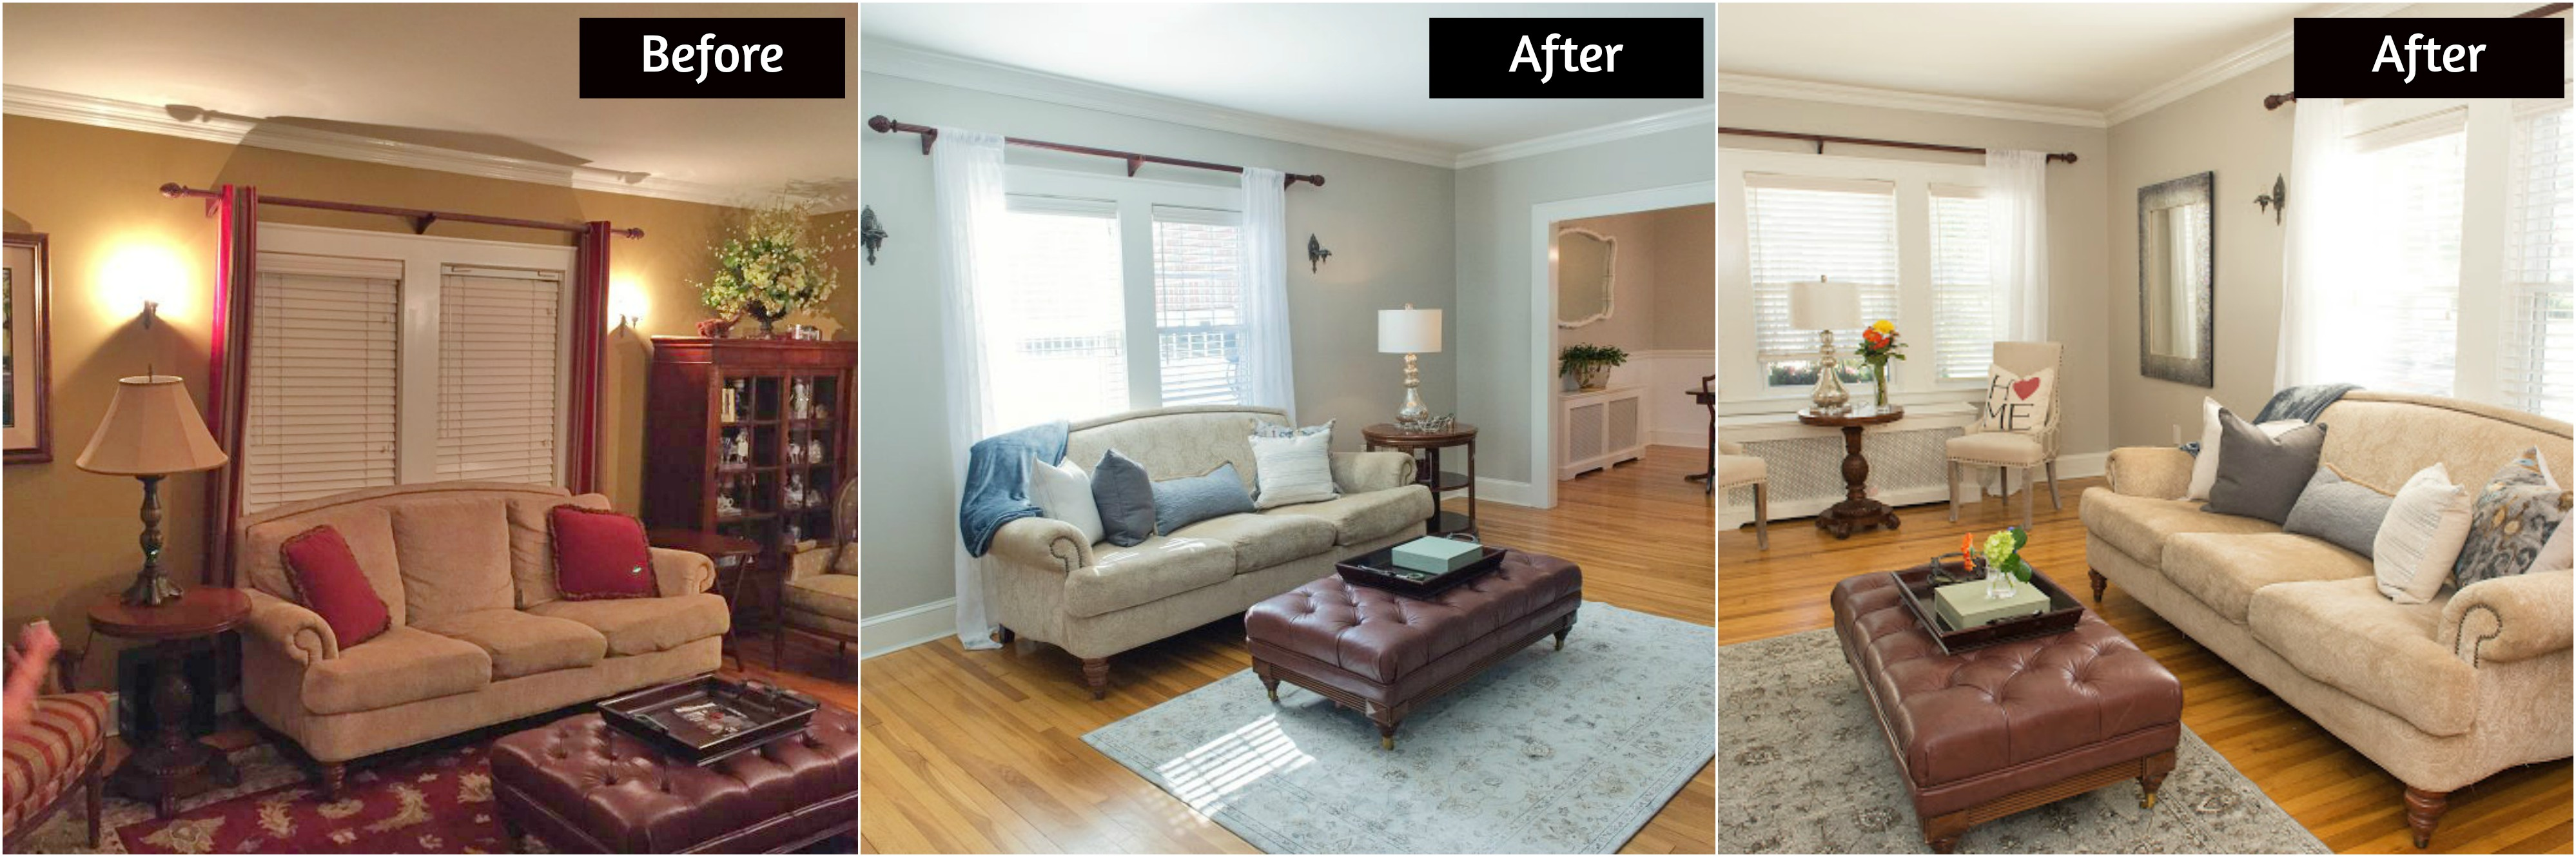 before after living room before after living room kristyb 14436